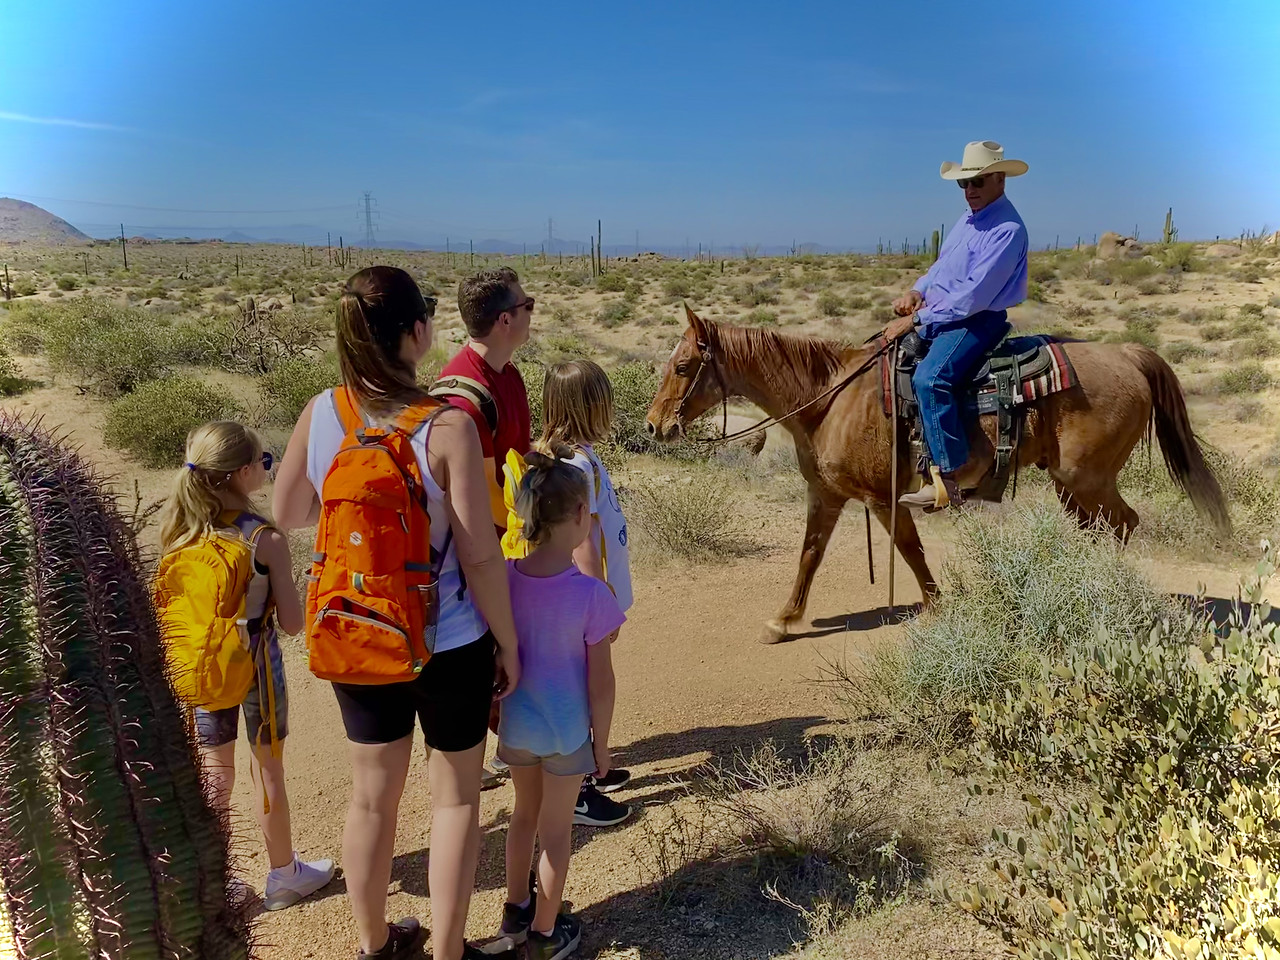 A family of five is thrilled by the sight of a real-life cowboy on horseback during one of our Phoenix hiking tours. Taking children on a Wild Bunch Desert Guides adventure always is a rewarding experience because no one ever knows what sort of once-in-a-lifetime sight they will see.